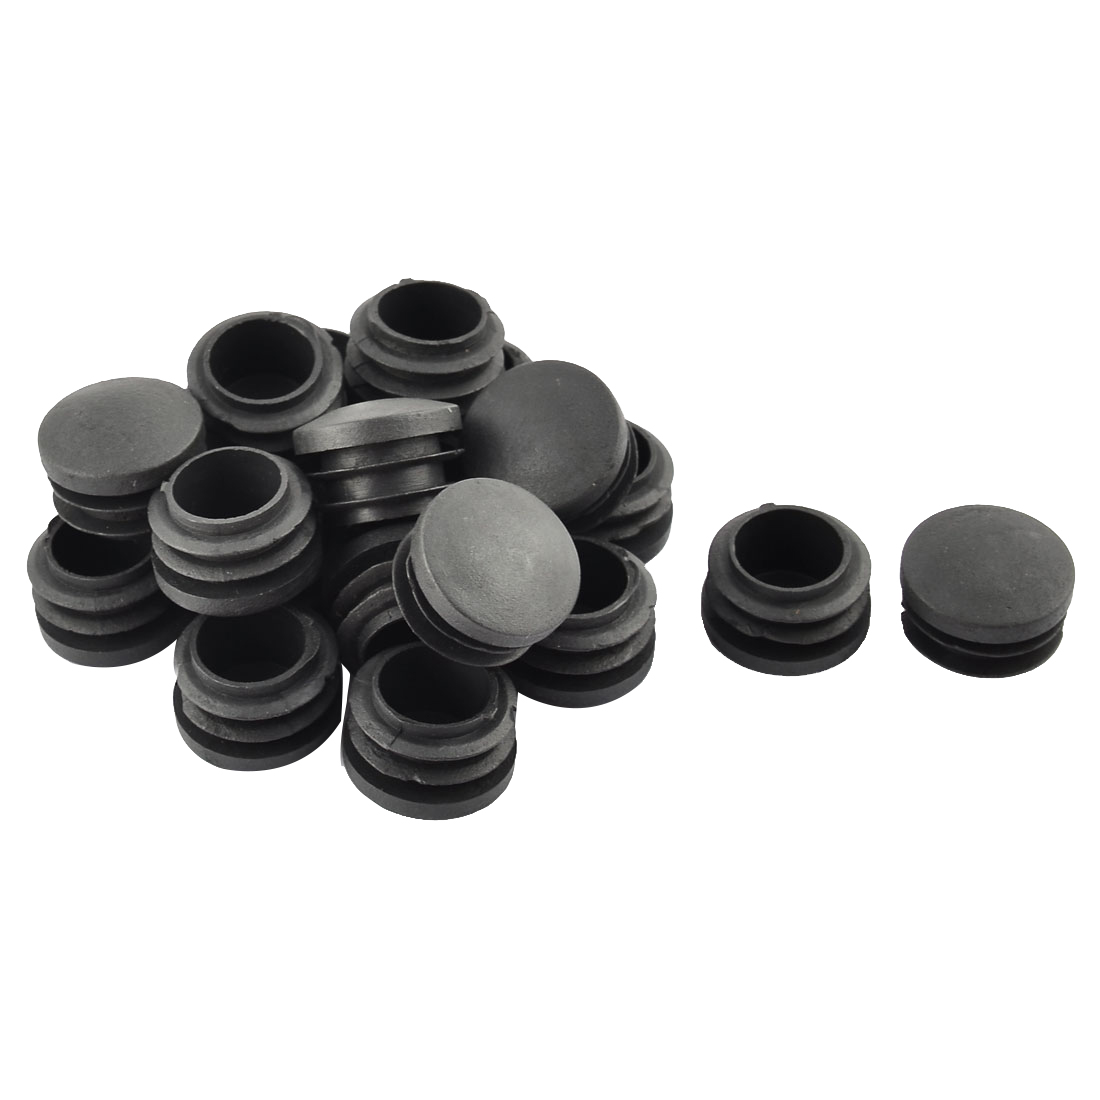 Household Plastic Cylindrical Shaped Furniture Chair Leg Feet Tube Insert Black 20 Pcs